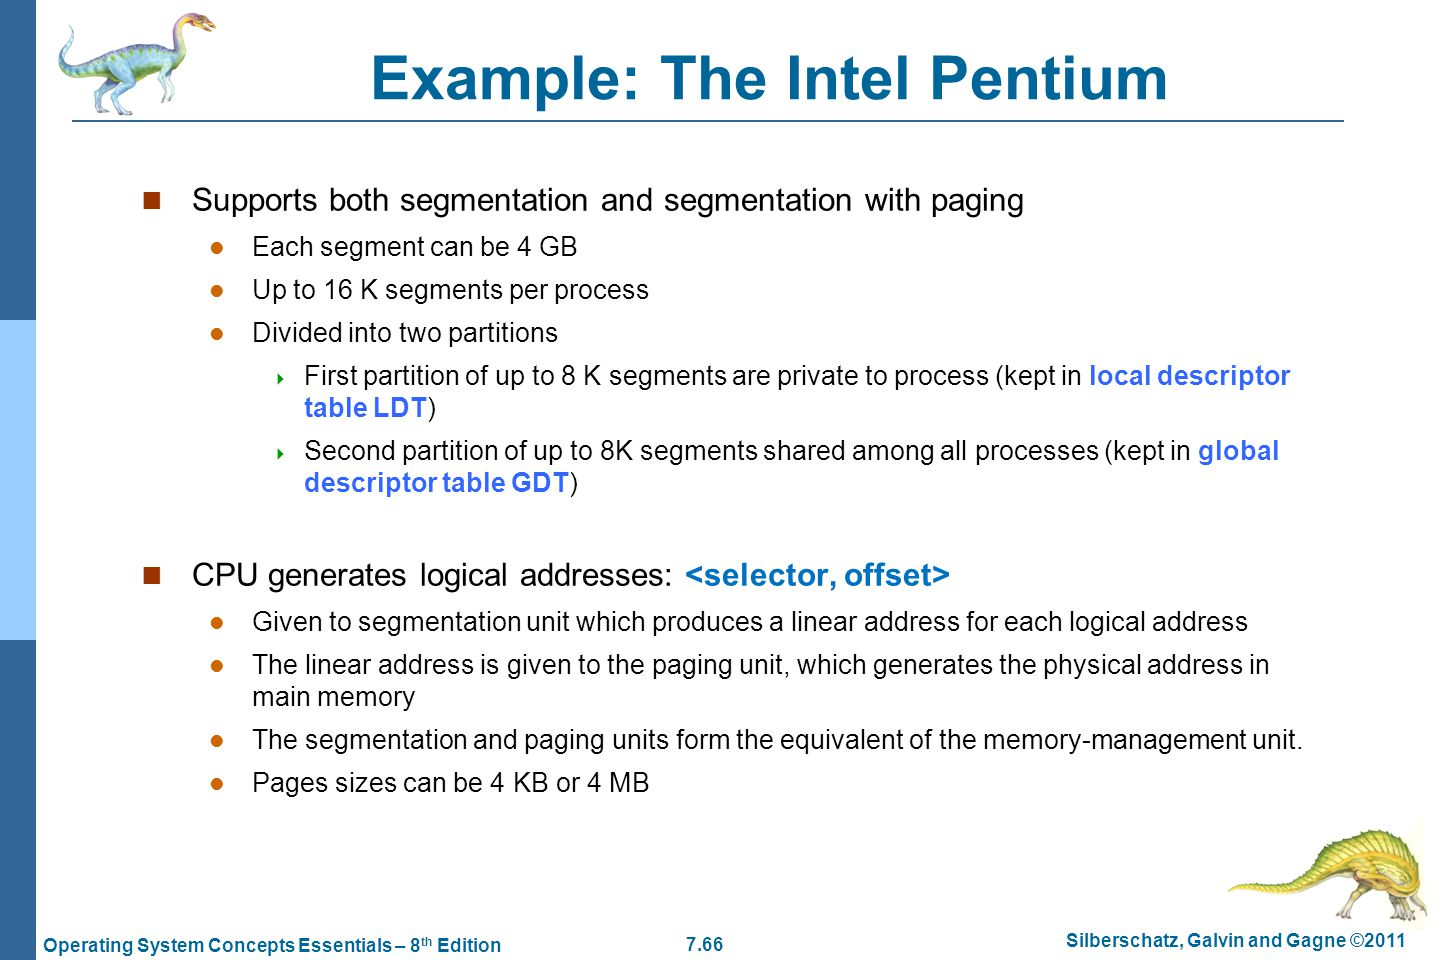 7.66 Silberschatz, Galvin and Gagne ©2011 Operating System Concepts Essentials – 8 th Edition Example: The Intel Pentium Supports both segmentation and segmentation with paging Each segment can be 4 GB Up to 16 K segments per process Divided into two partitions  First partition of up to 8 K segments are private to process (kept in local descriptor table LDT)  Second partition of up to 8K segments shared among all processes (kept in global descriptor table GDT) CPU generates logical addresses: Given to segmentation unit which produces a linear address for each logical address The linear address is given to the paging unit, which generates the physical address in main memory The segmentation and paging units form the equivalent of the memory-management unit.